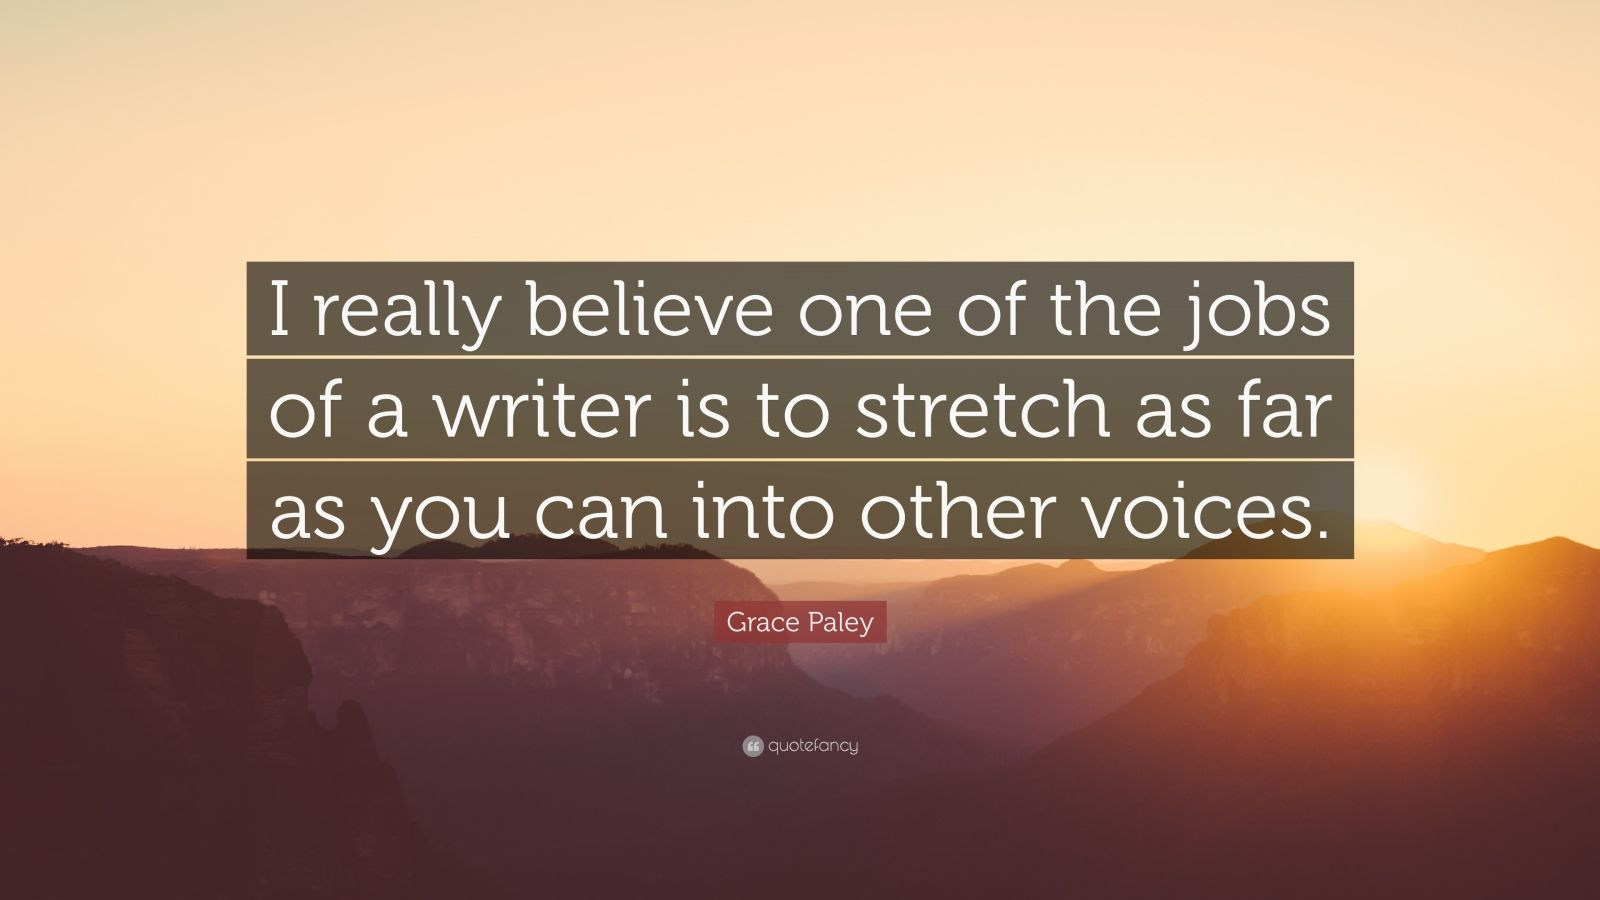 grace paley quotes quotefancy grace paley quote i really believe one of the jobs of a writer is